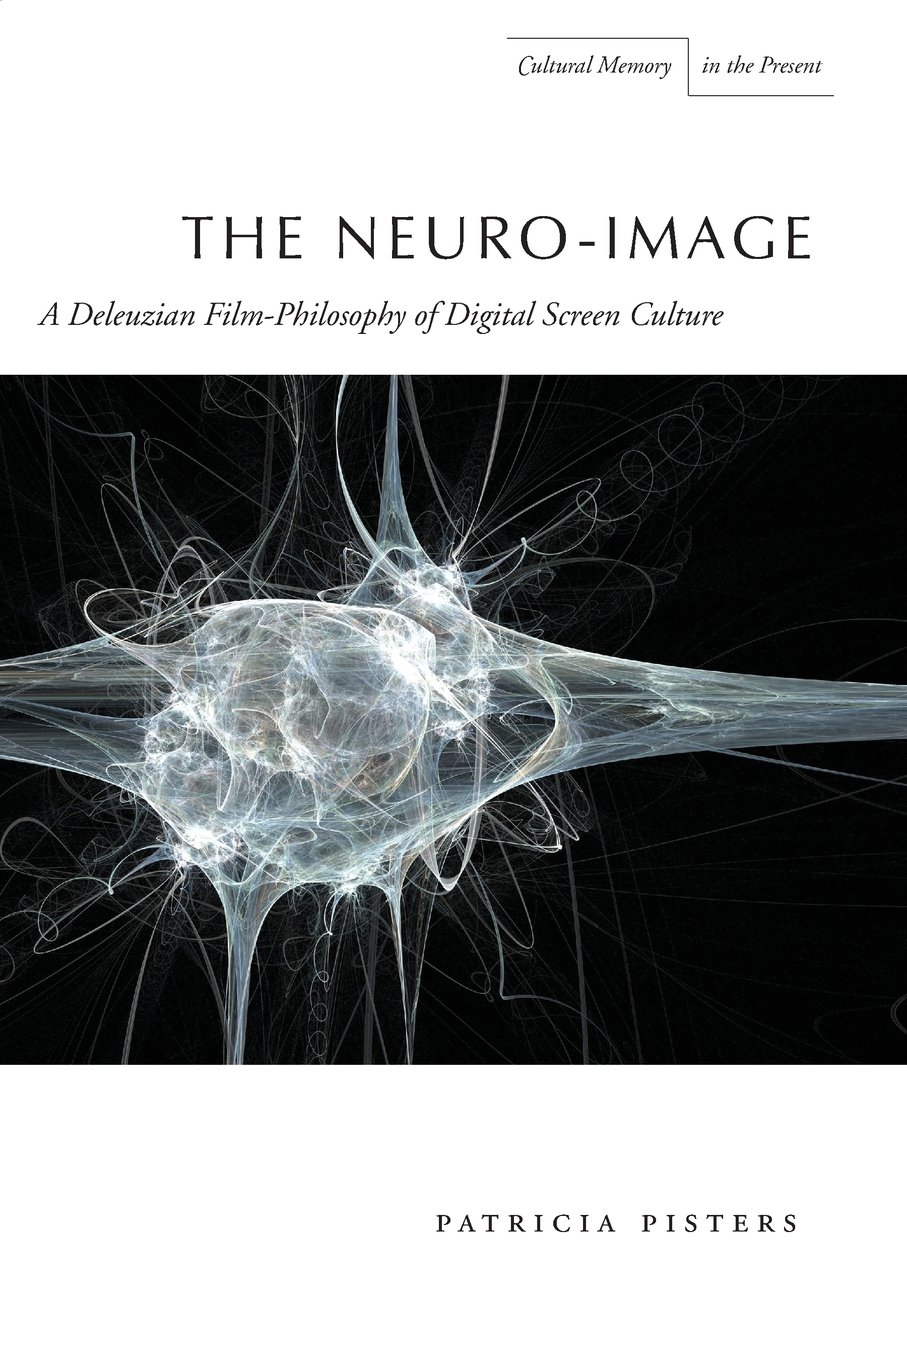 Buy The Neuro-Image: A Deleuzian Film-Philosophy of Digital Screen Culture